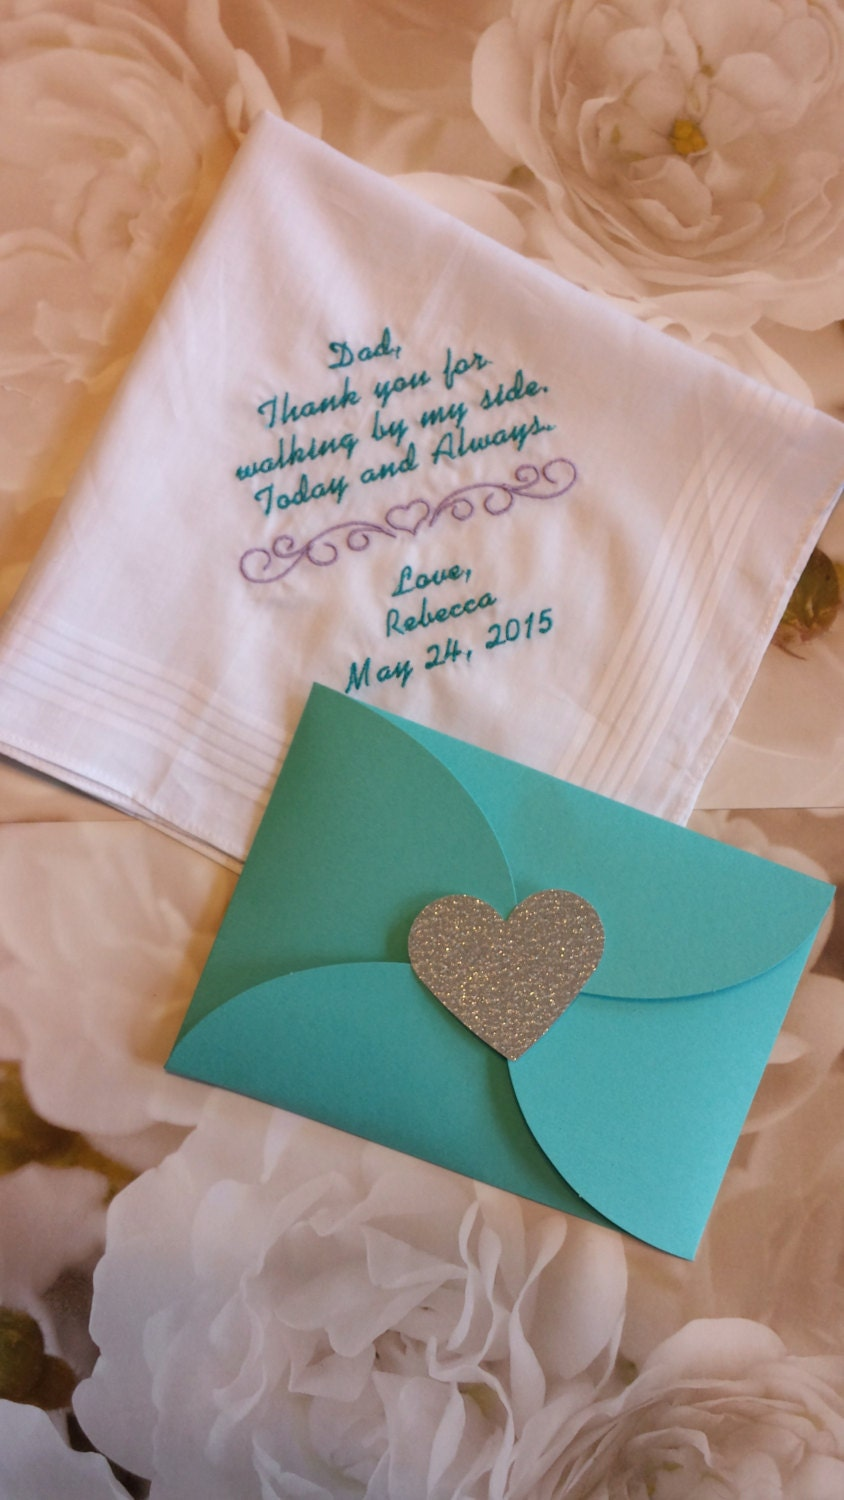 Wedding Gift For Dad From Bride : Father of the Bride. Gift for Dad. Embroidered Wedding